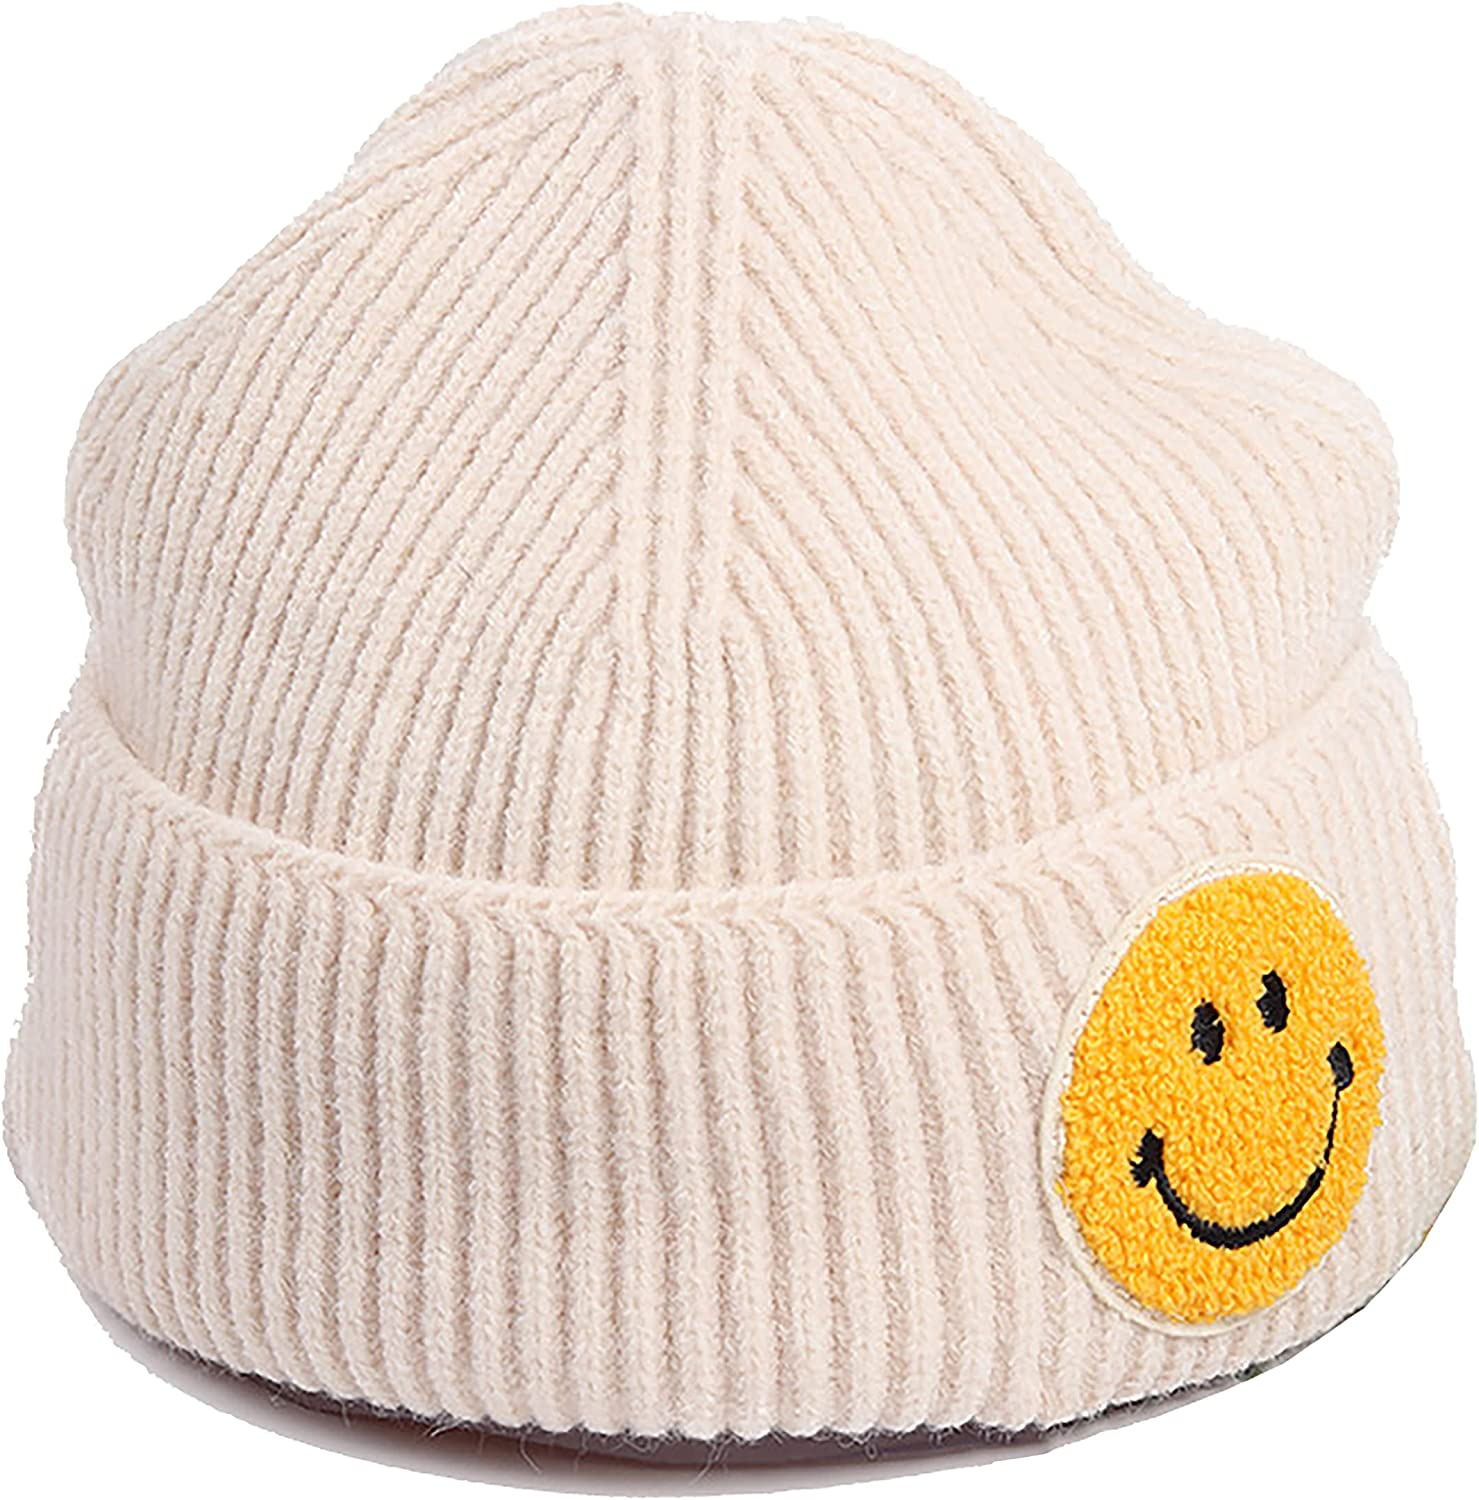 REENLOON Smiley Face Beanie Hat for Women Girls Cool Beanies with Designs Embroidery Winter Warm Cuffed Knit Cap